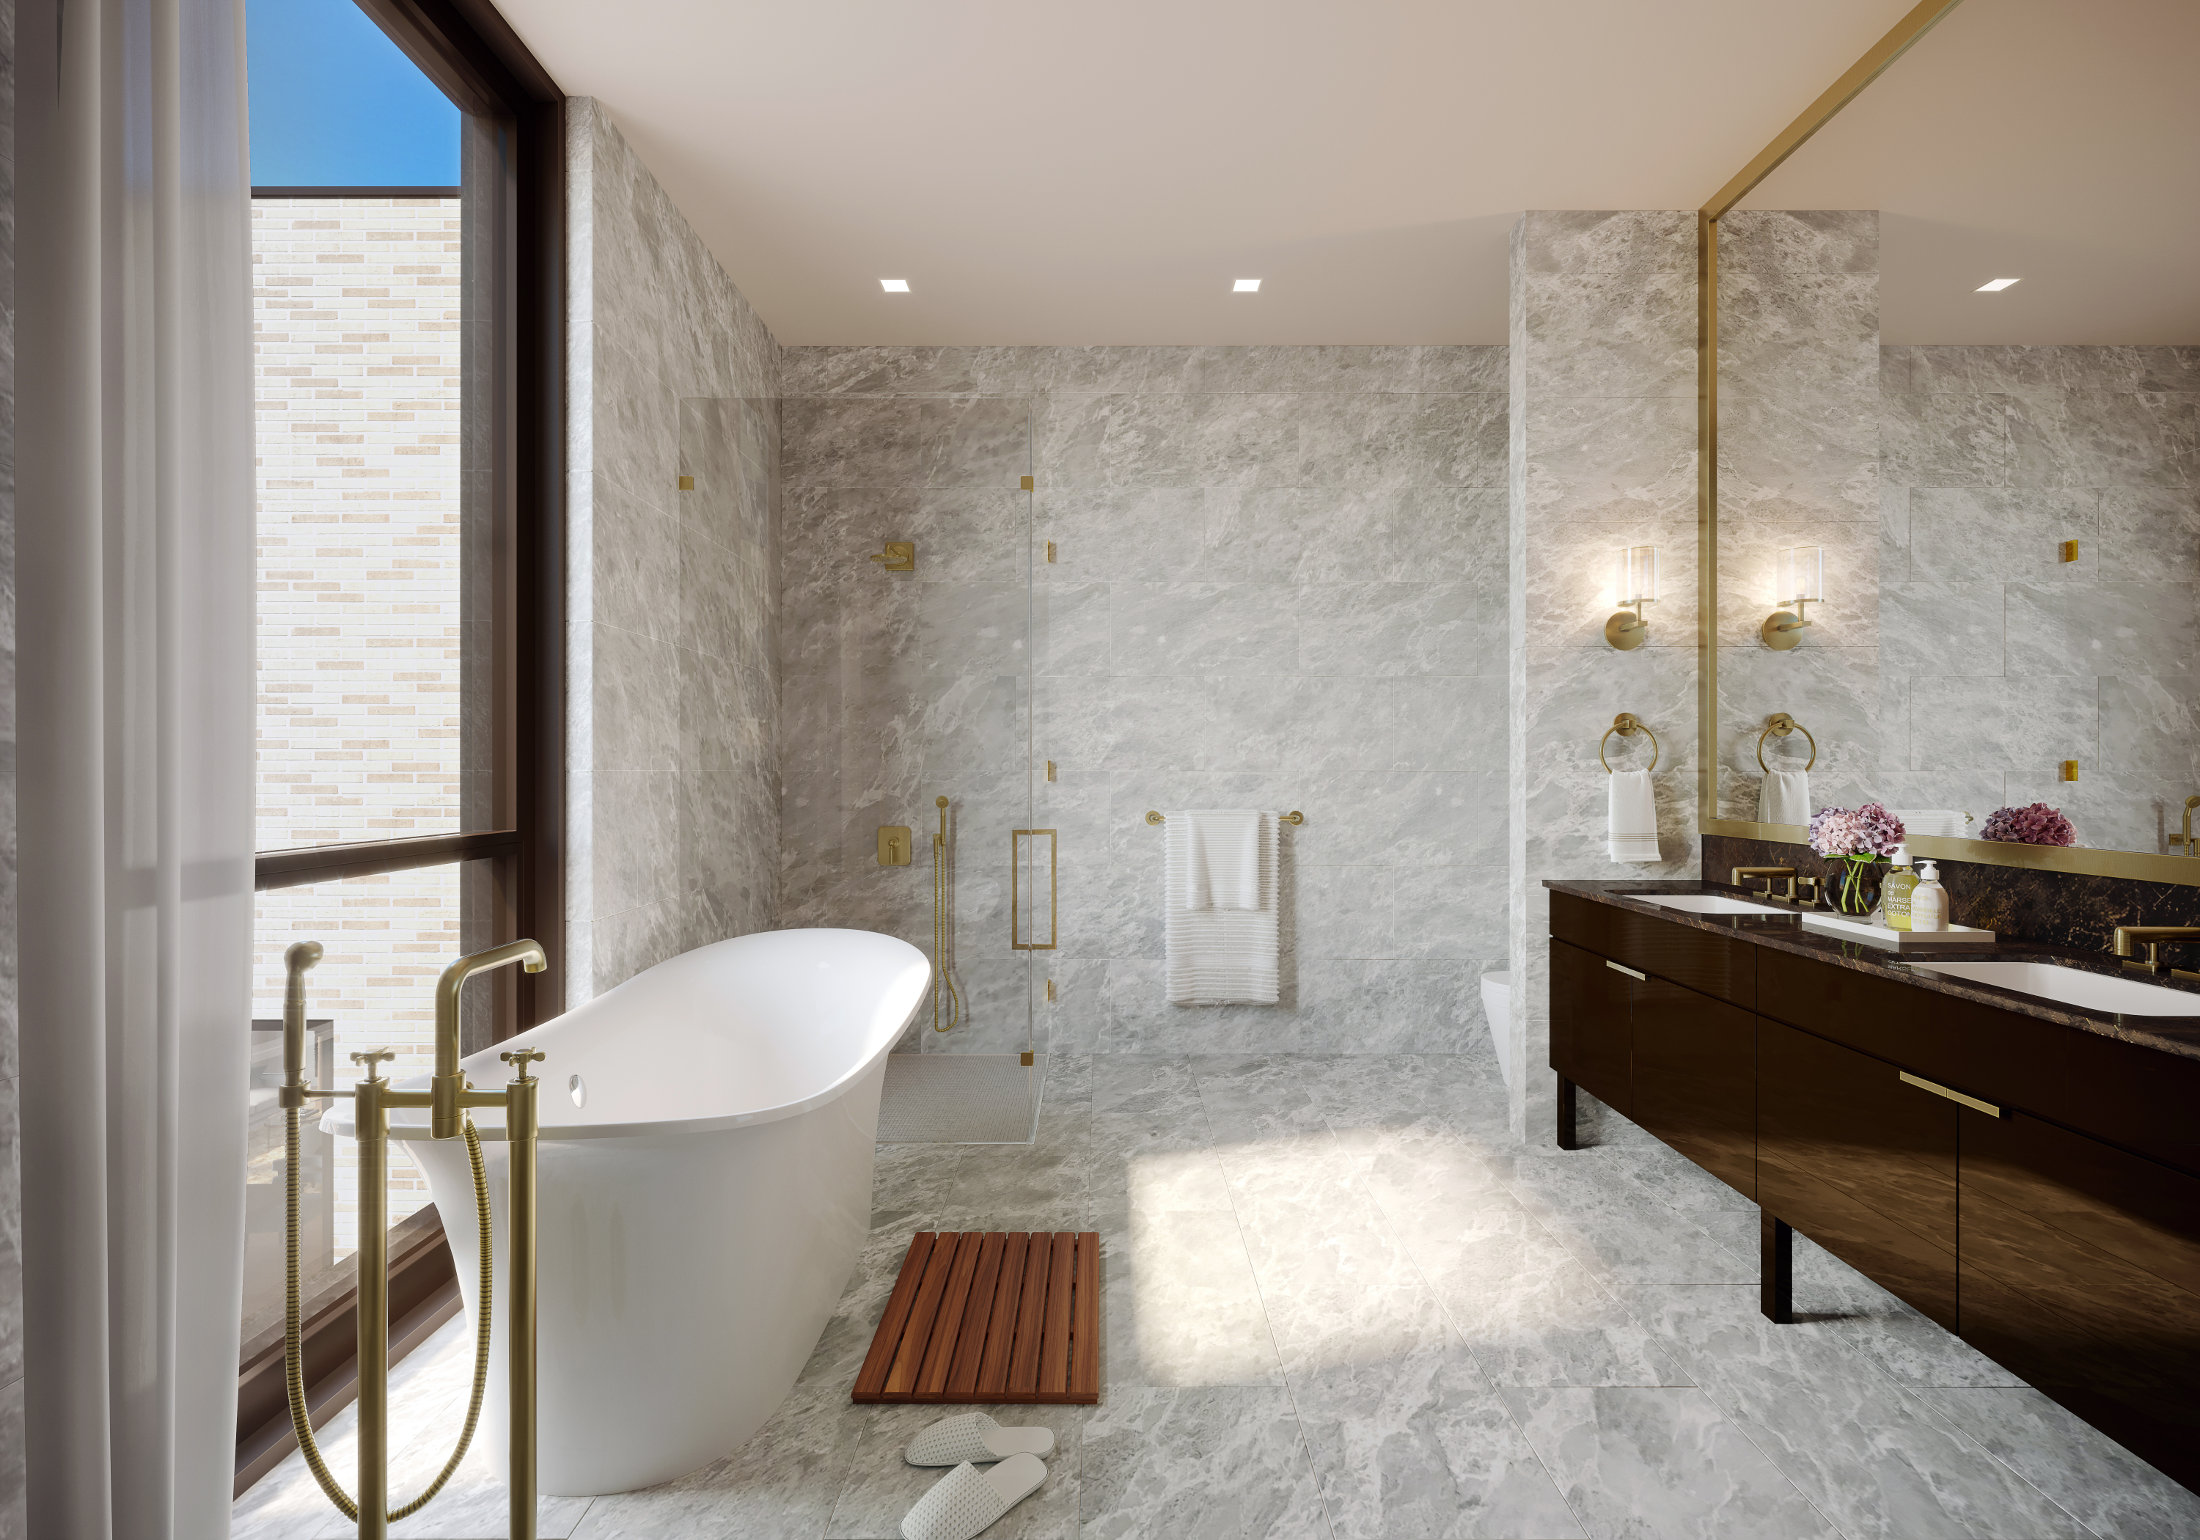 Luxurious bathroom bathed in light